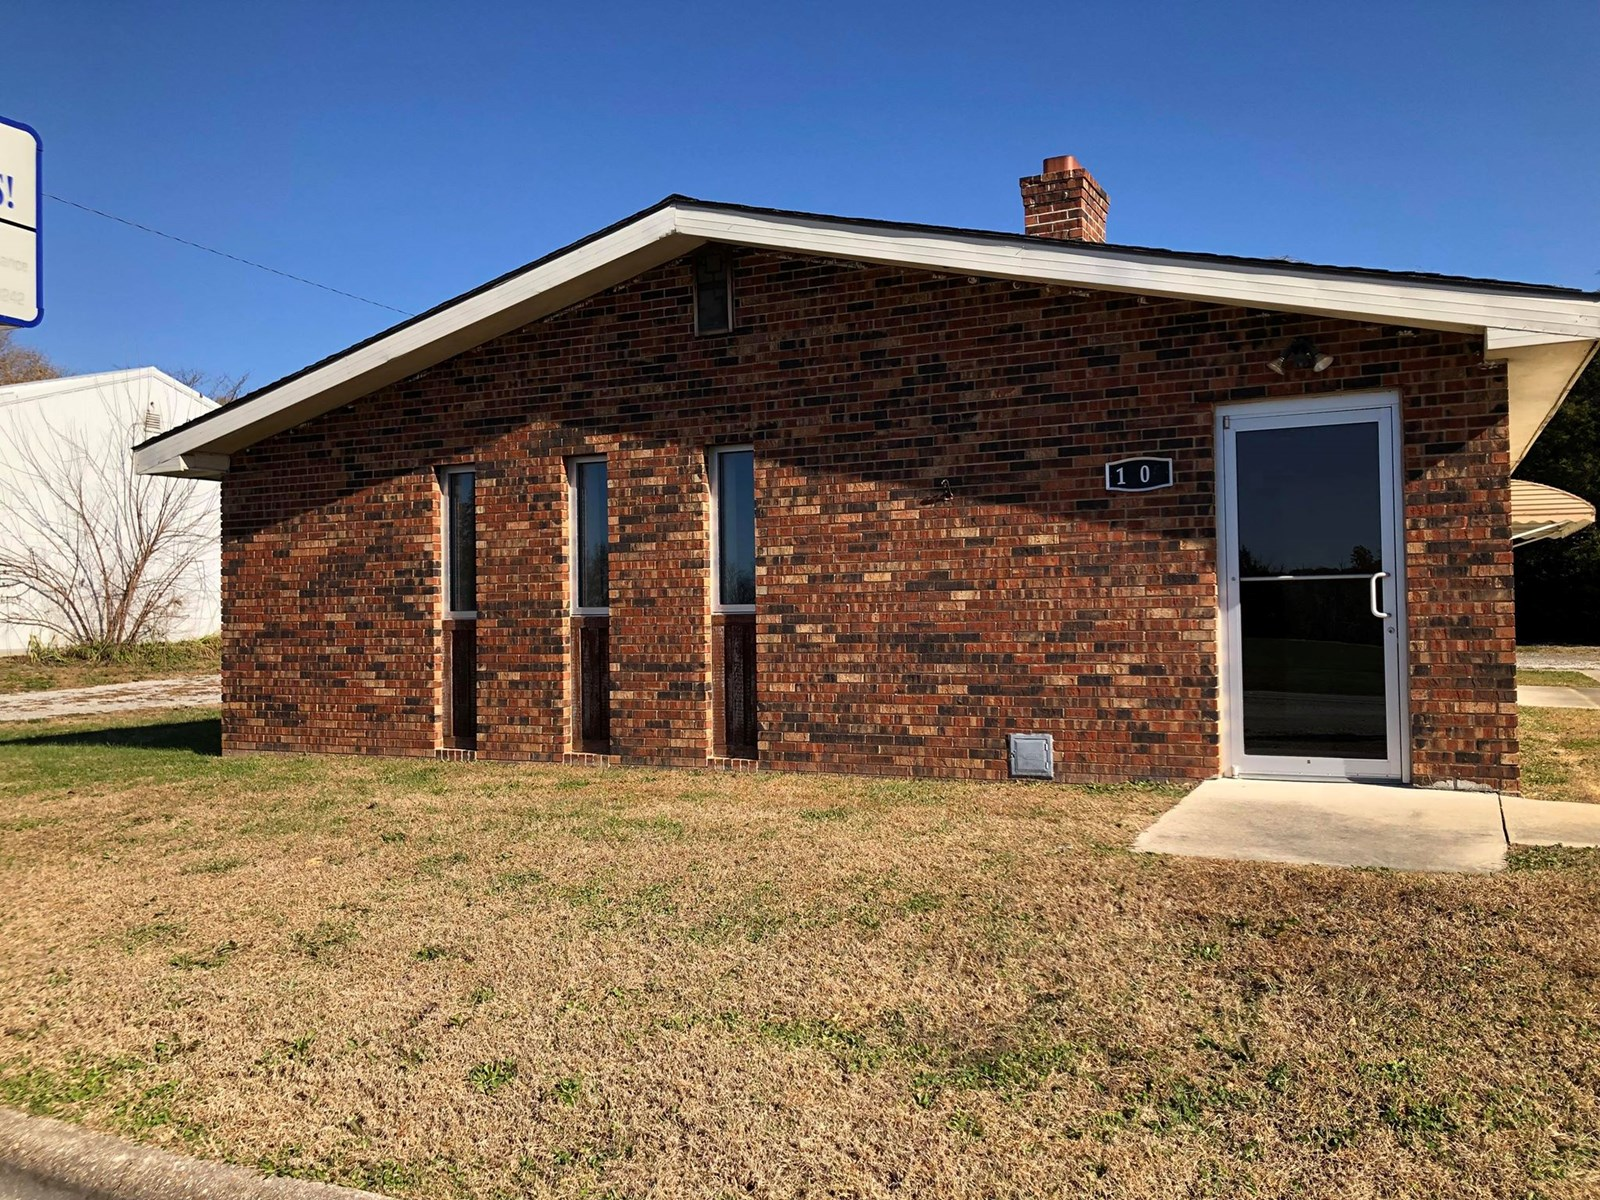 Ava, Mo Commercial building for sale.